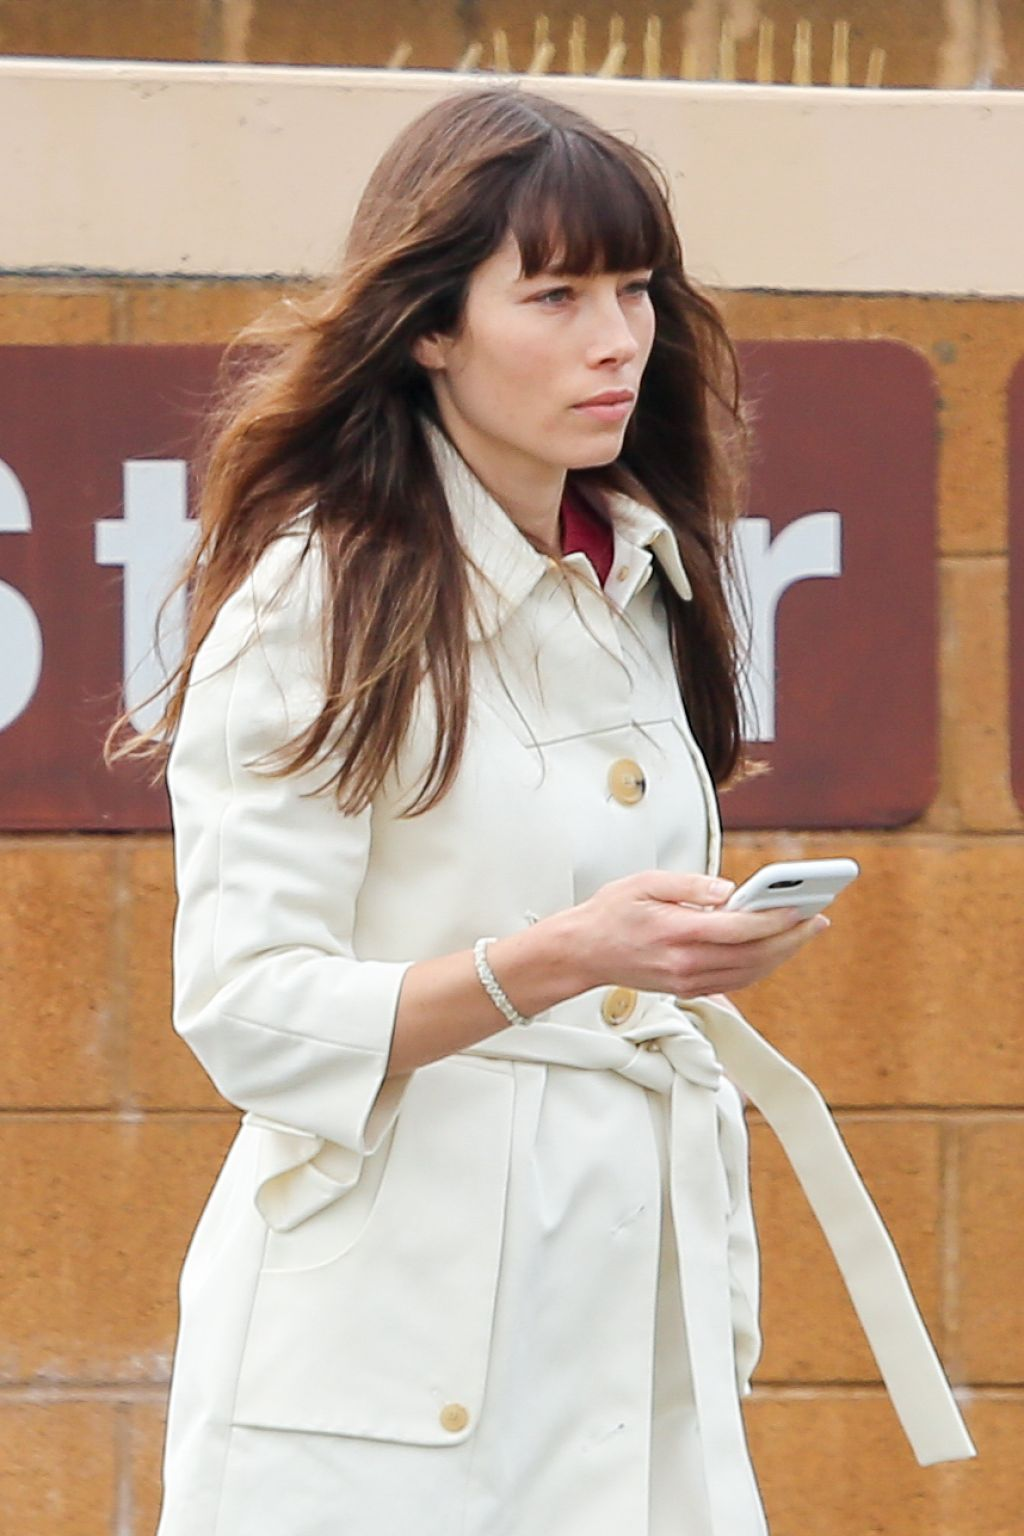 Jessica biel went out for a lunch in santa monica 262019 - 2019 year